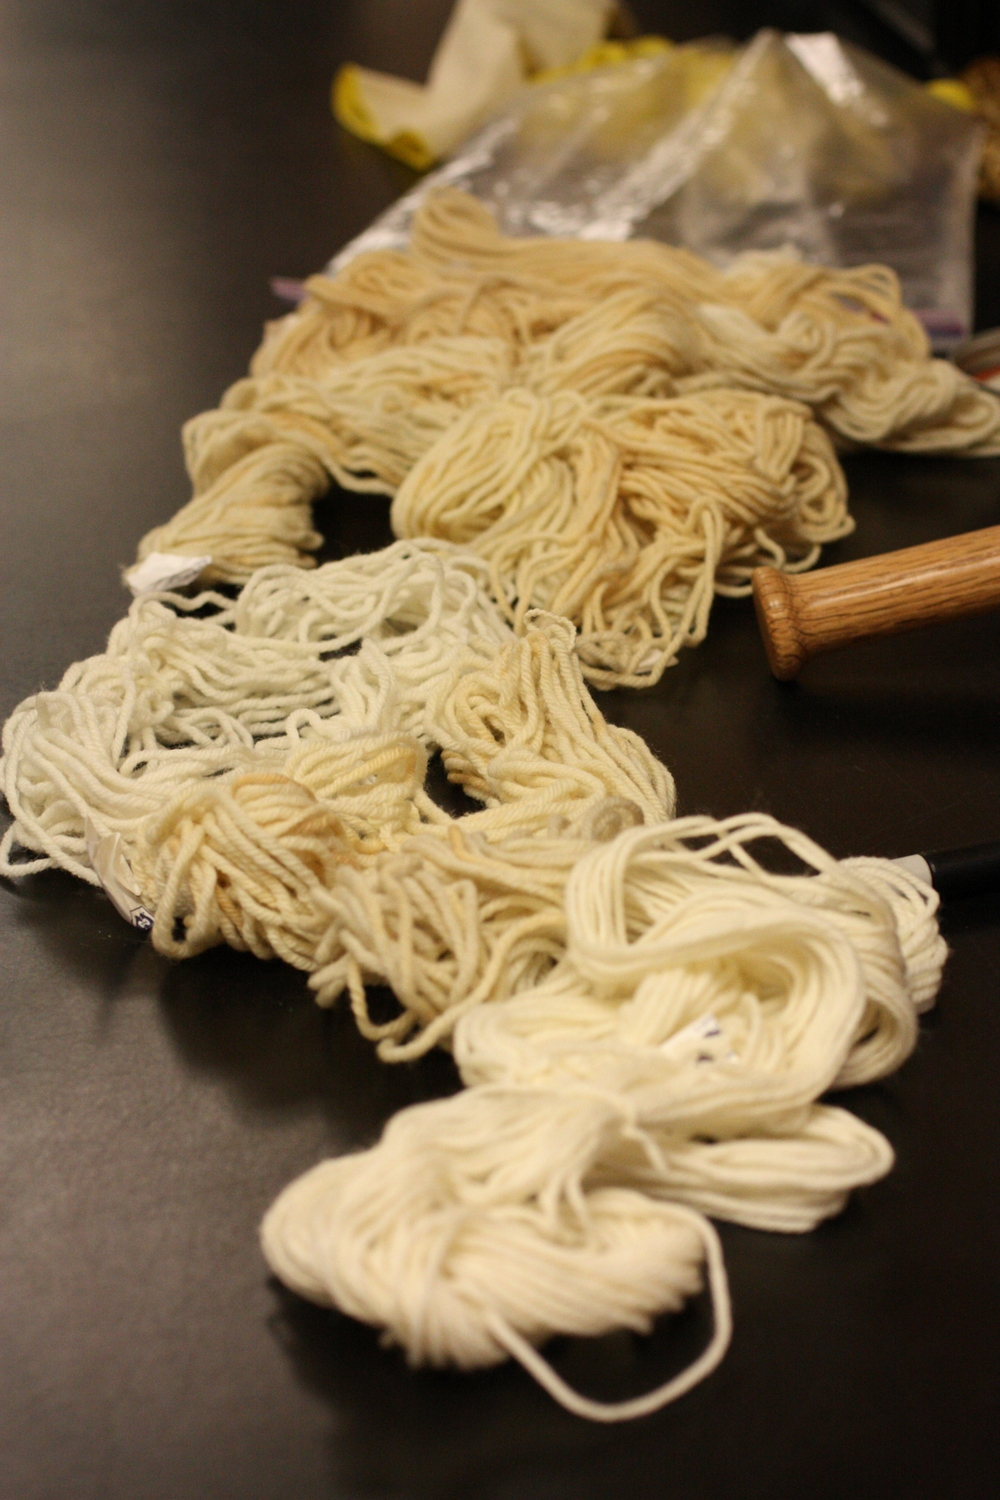 The wool used for dyeing can be treated with a mordant (a fixative that helps the pigment bind to the fiber and give you consistent, more even results). Some common mordants are alum and iron.